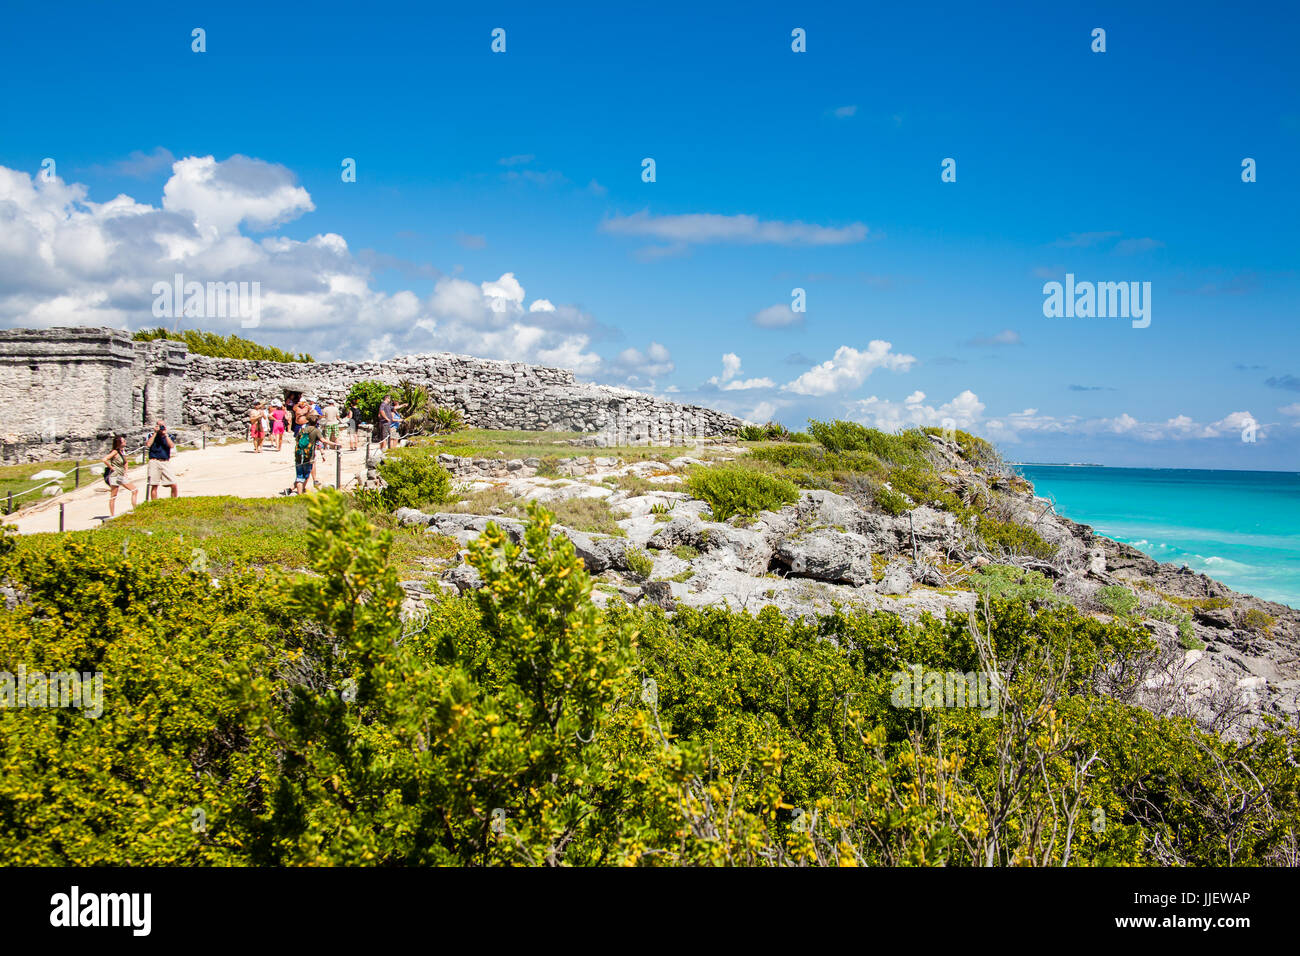 Archaeological ruins of Tulum - Quintana Roo, Mexico - Stock Image